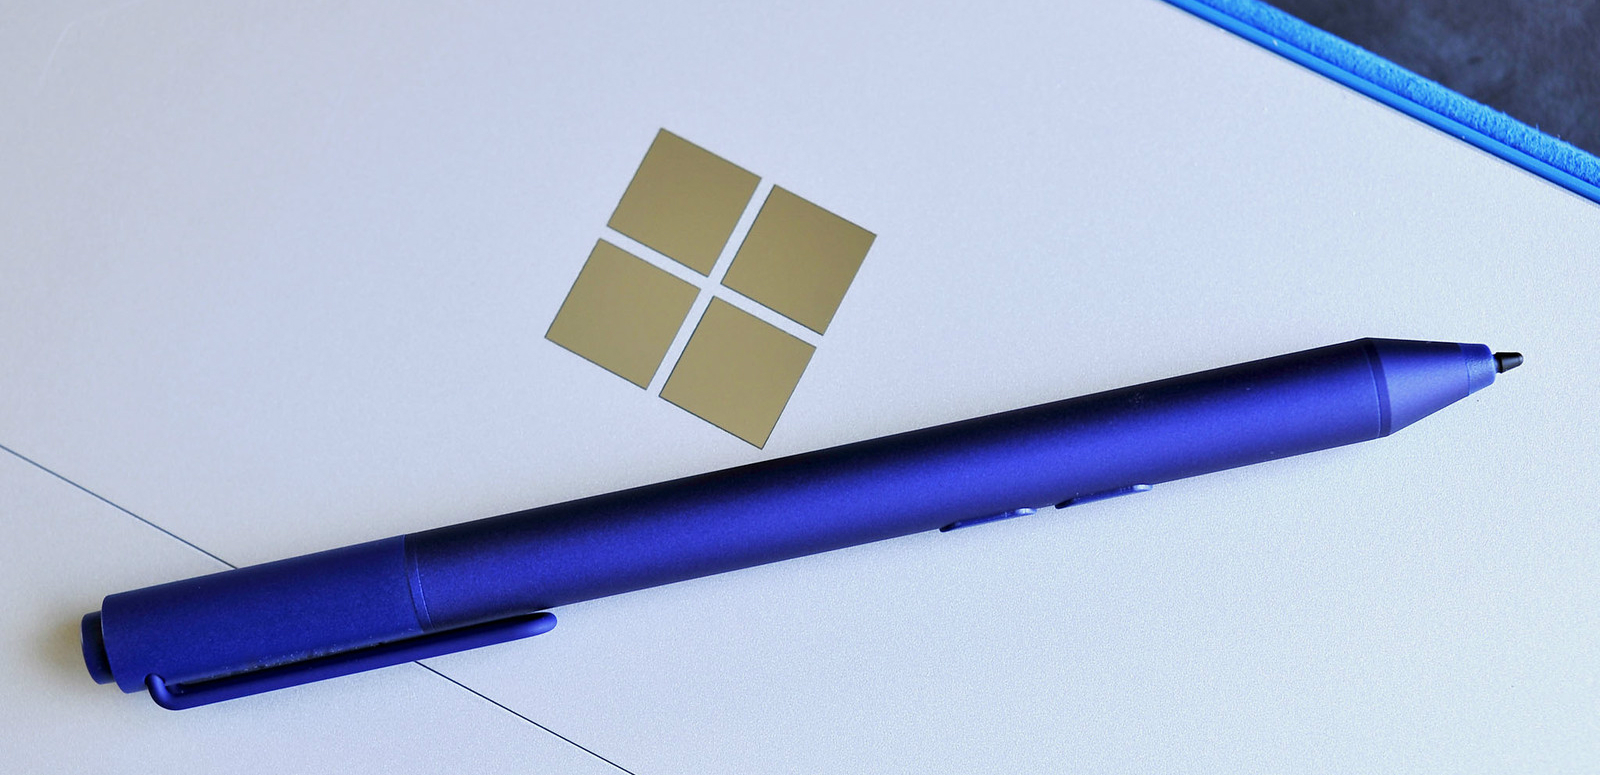 Surface 3-Analisis-Accesorios-Surface Pen